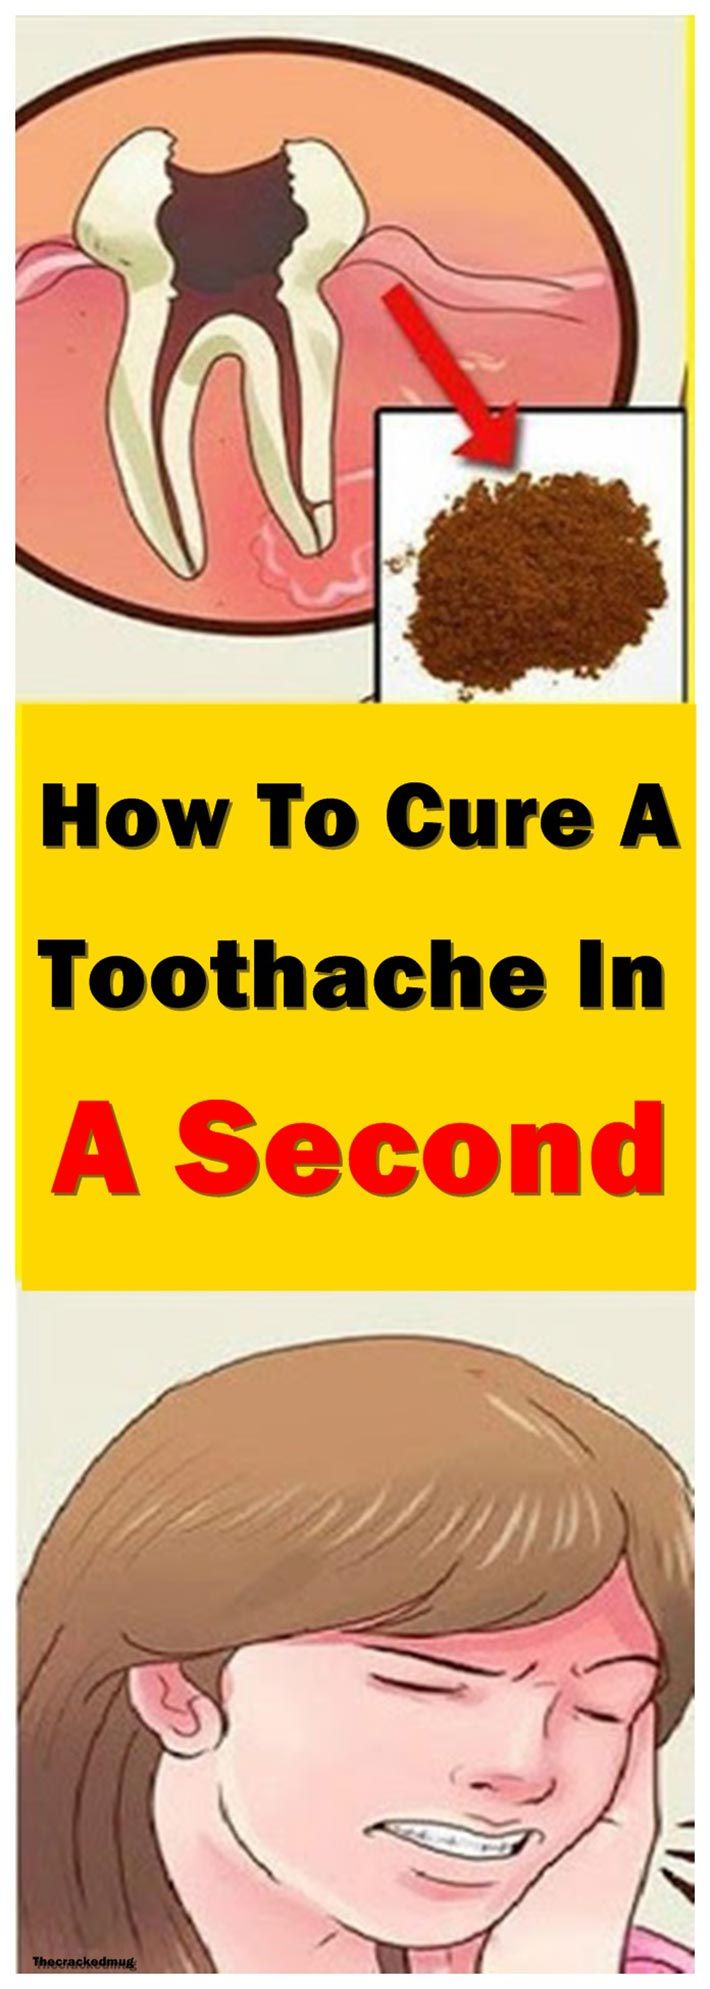 Ladies and gentlemen, I really think that we can all agree on one thing – a toothache is a painful thing that sends a lot of people running straight to the dentist. And, unfortunately, toothaches have a nasty habit of striking in the night, thanks to changes in blood flow, and when the dentist's office is closed. Somet